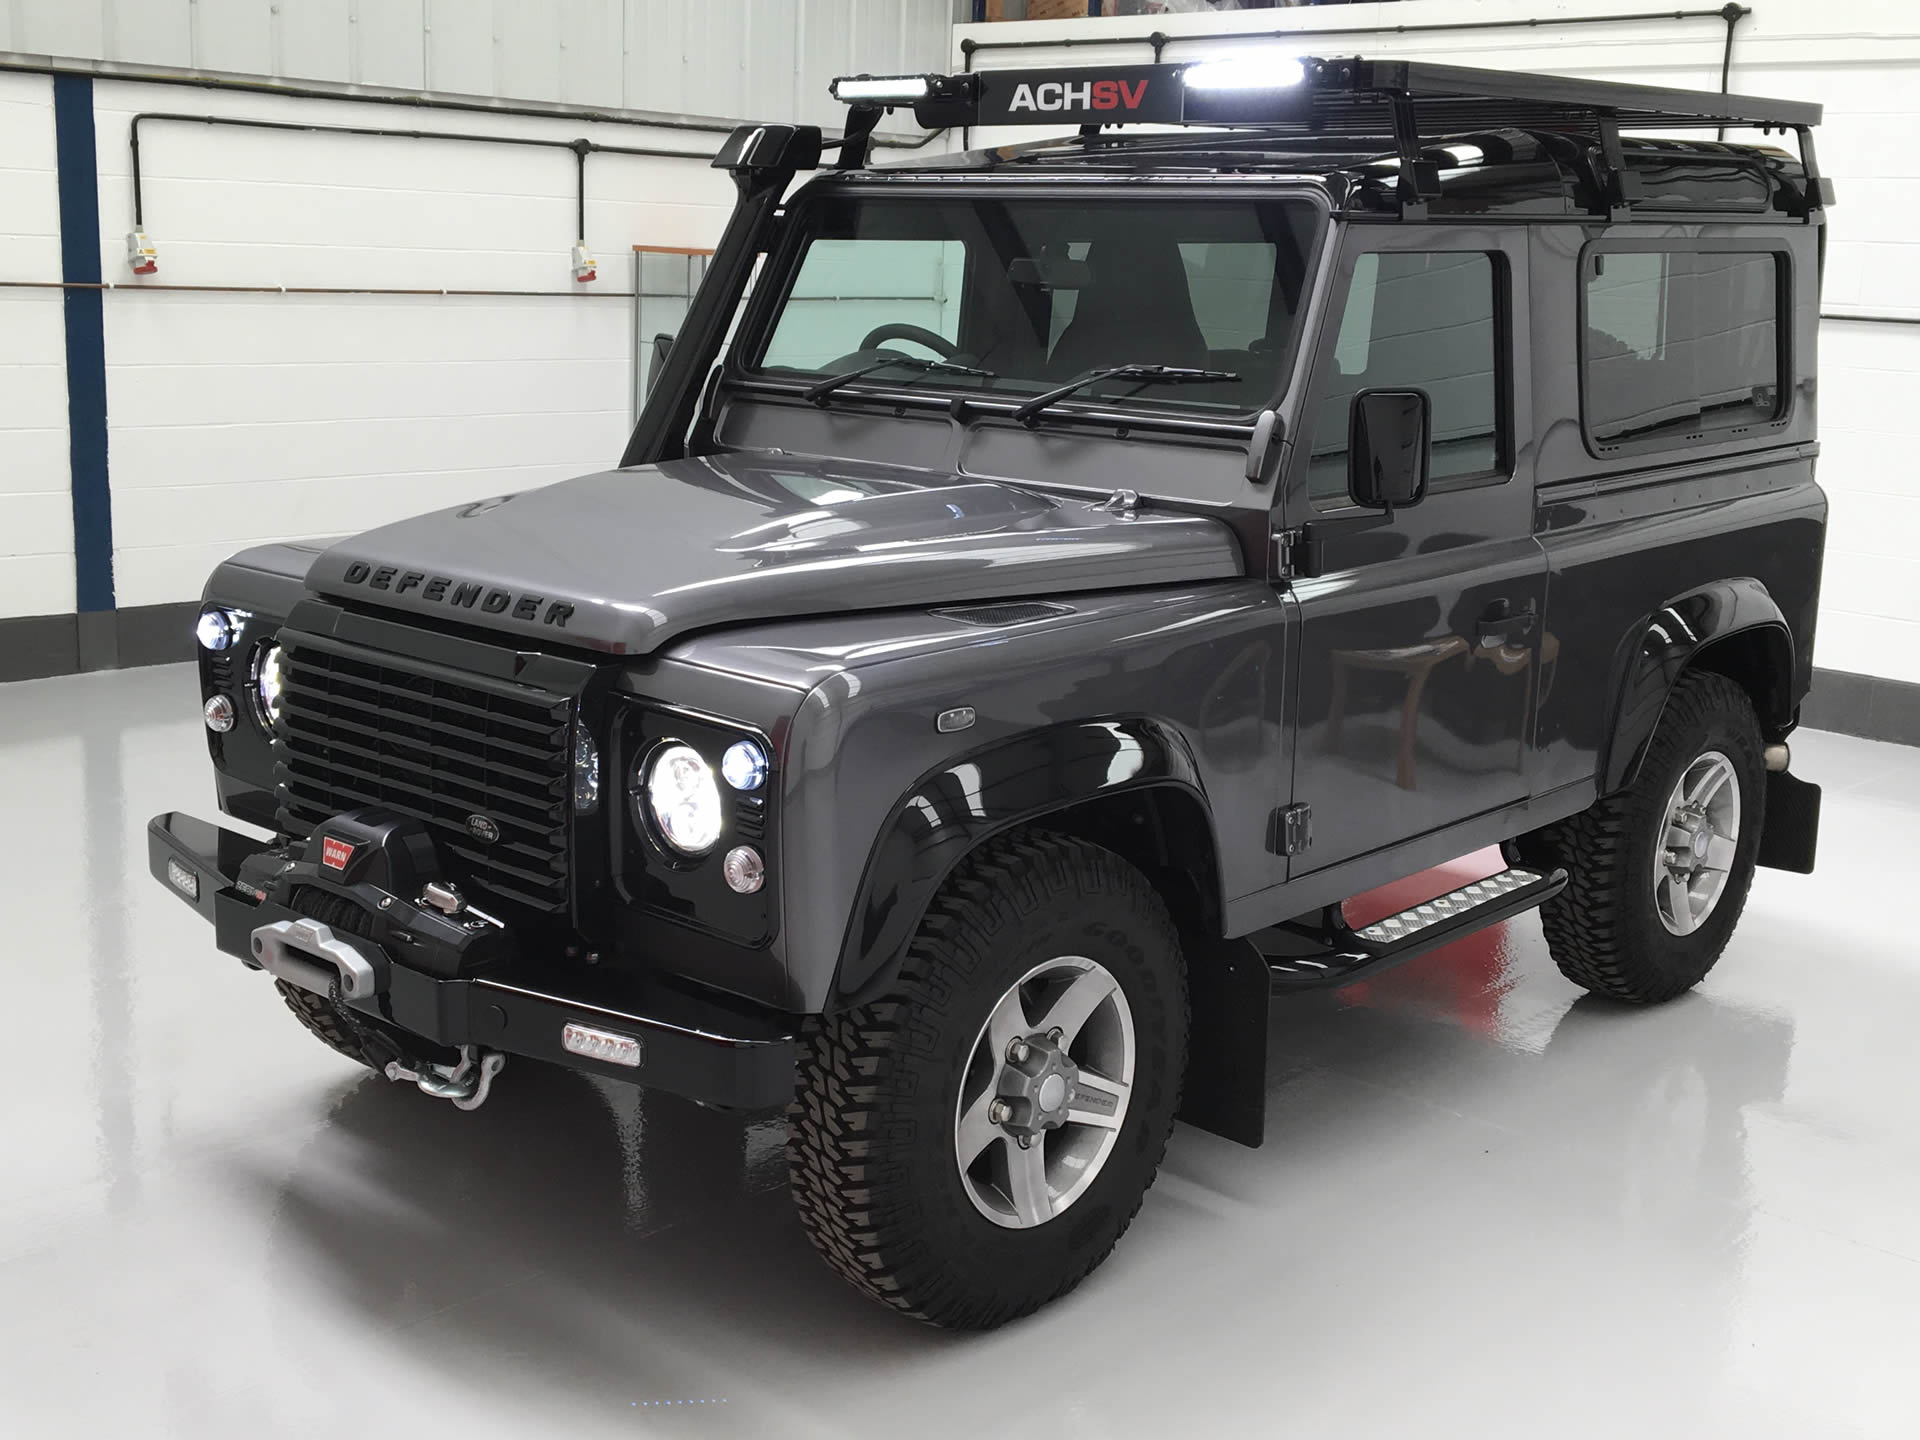 The second step of ACHSV custom vehicle builds is designing your build to create your very own Land Rover, just the way you want it.